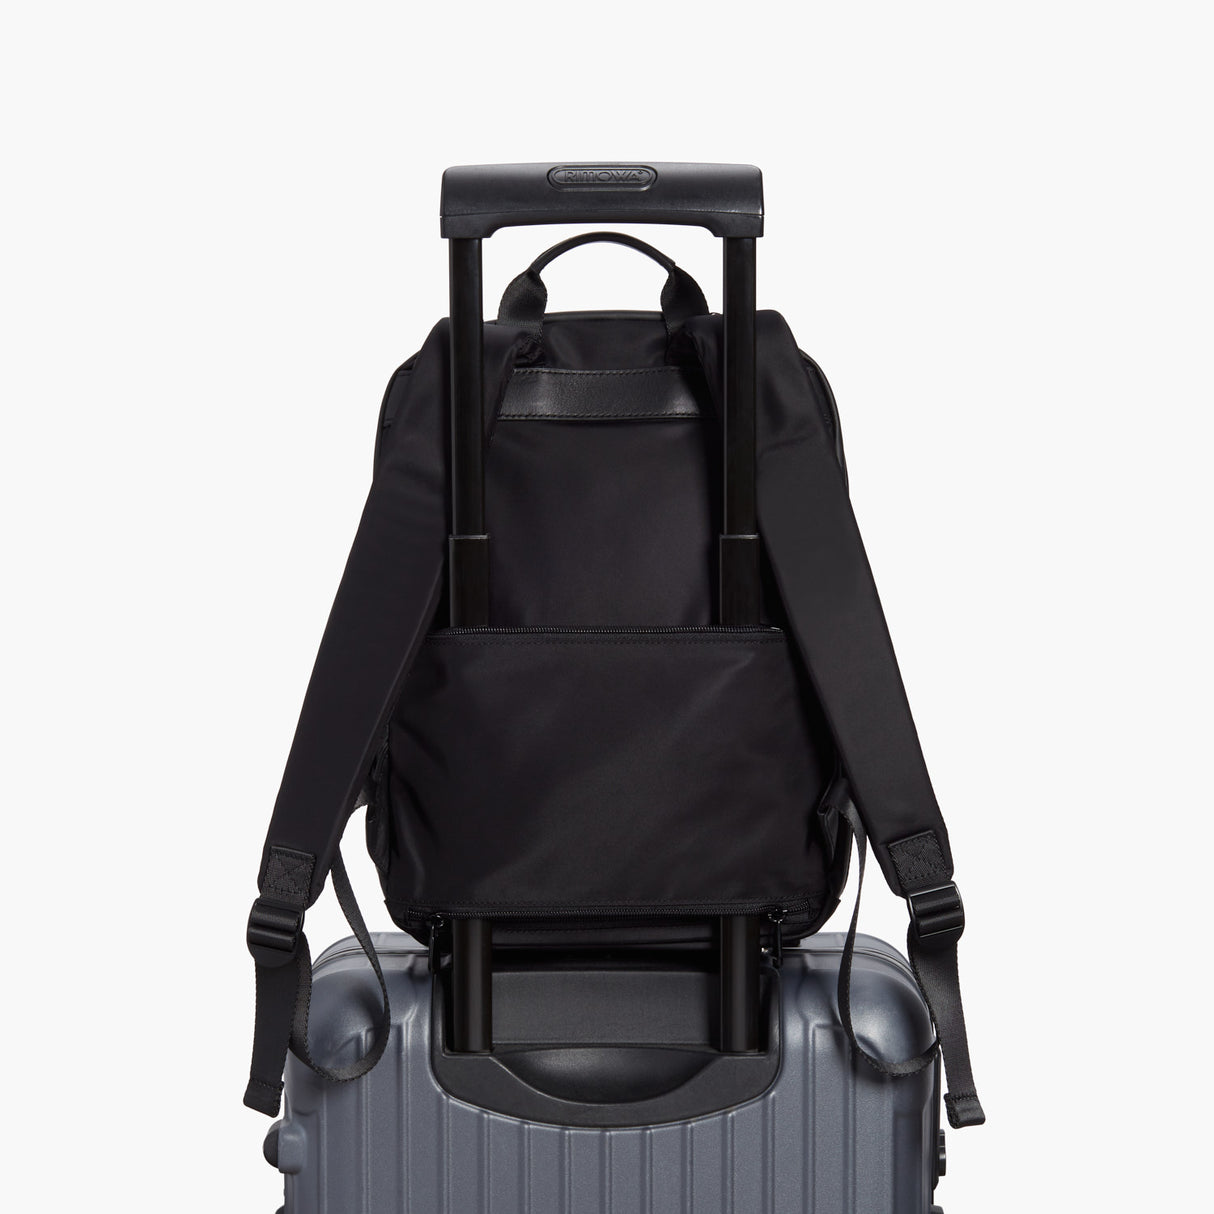 Luggage - Beacon - Nylon - Black / Gold / Lavender - Backpack - Lo & Sons